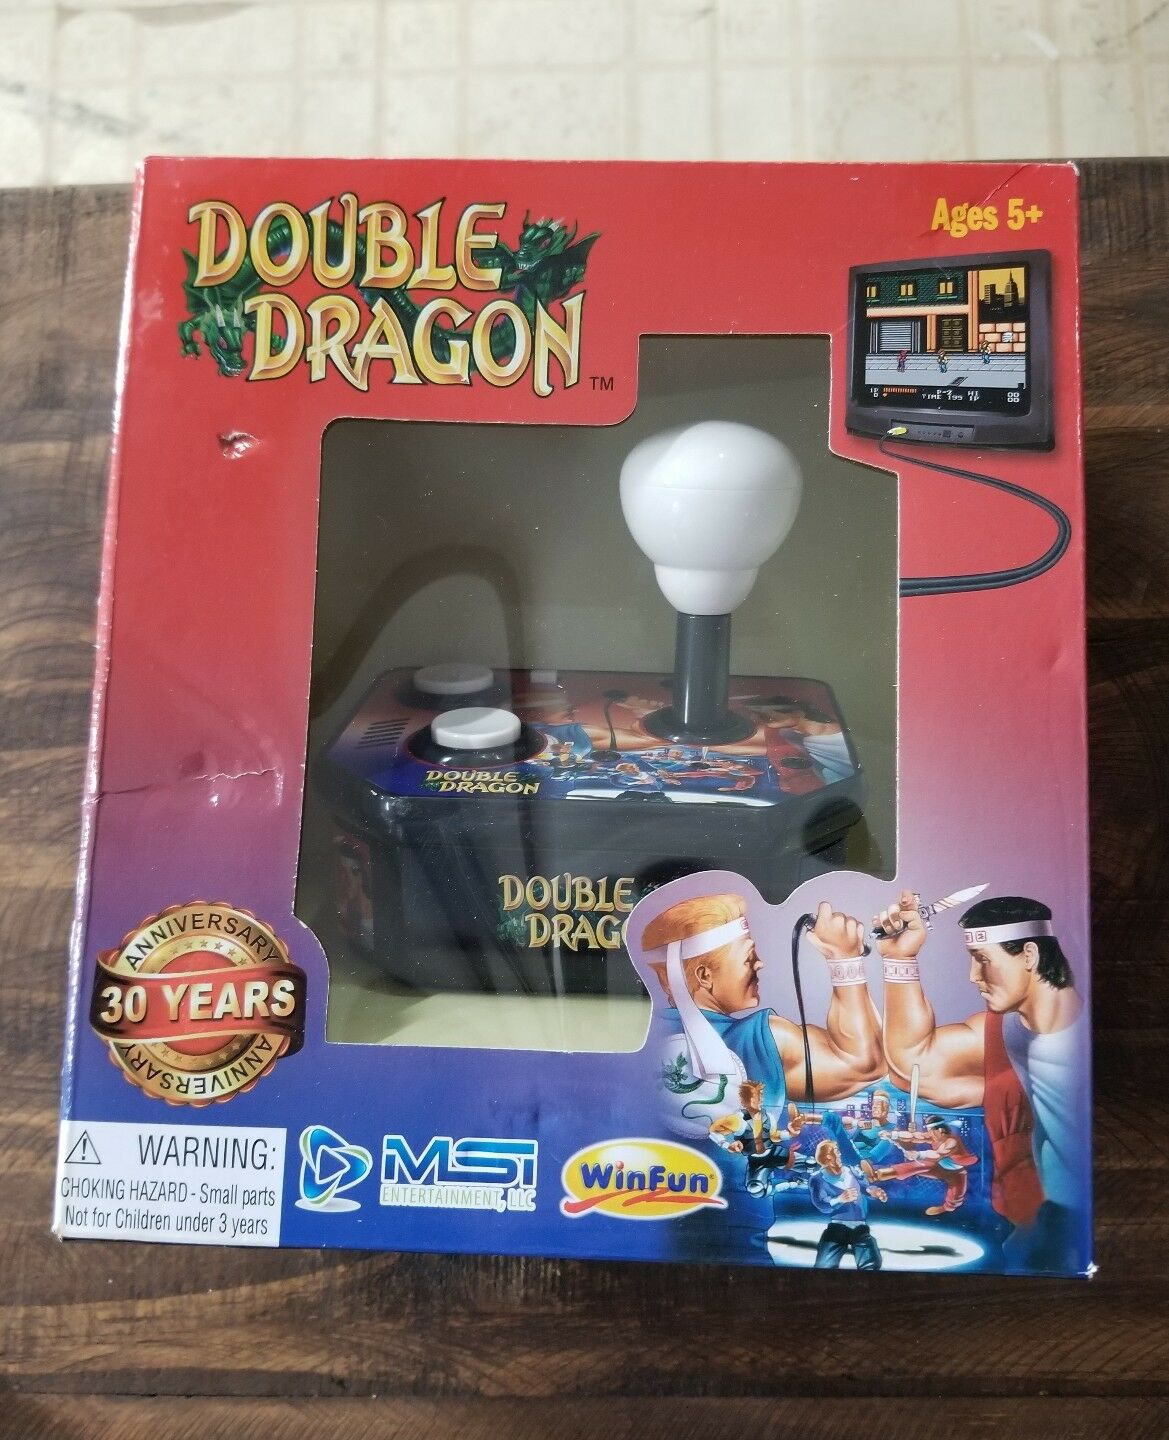 Double Dragon Plug and Play TV Arcade Video Game System 30 Year Anniversary